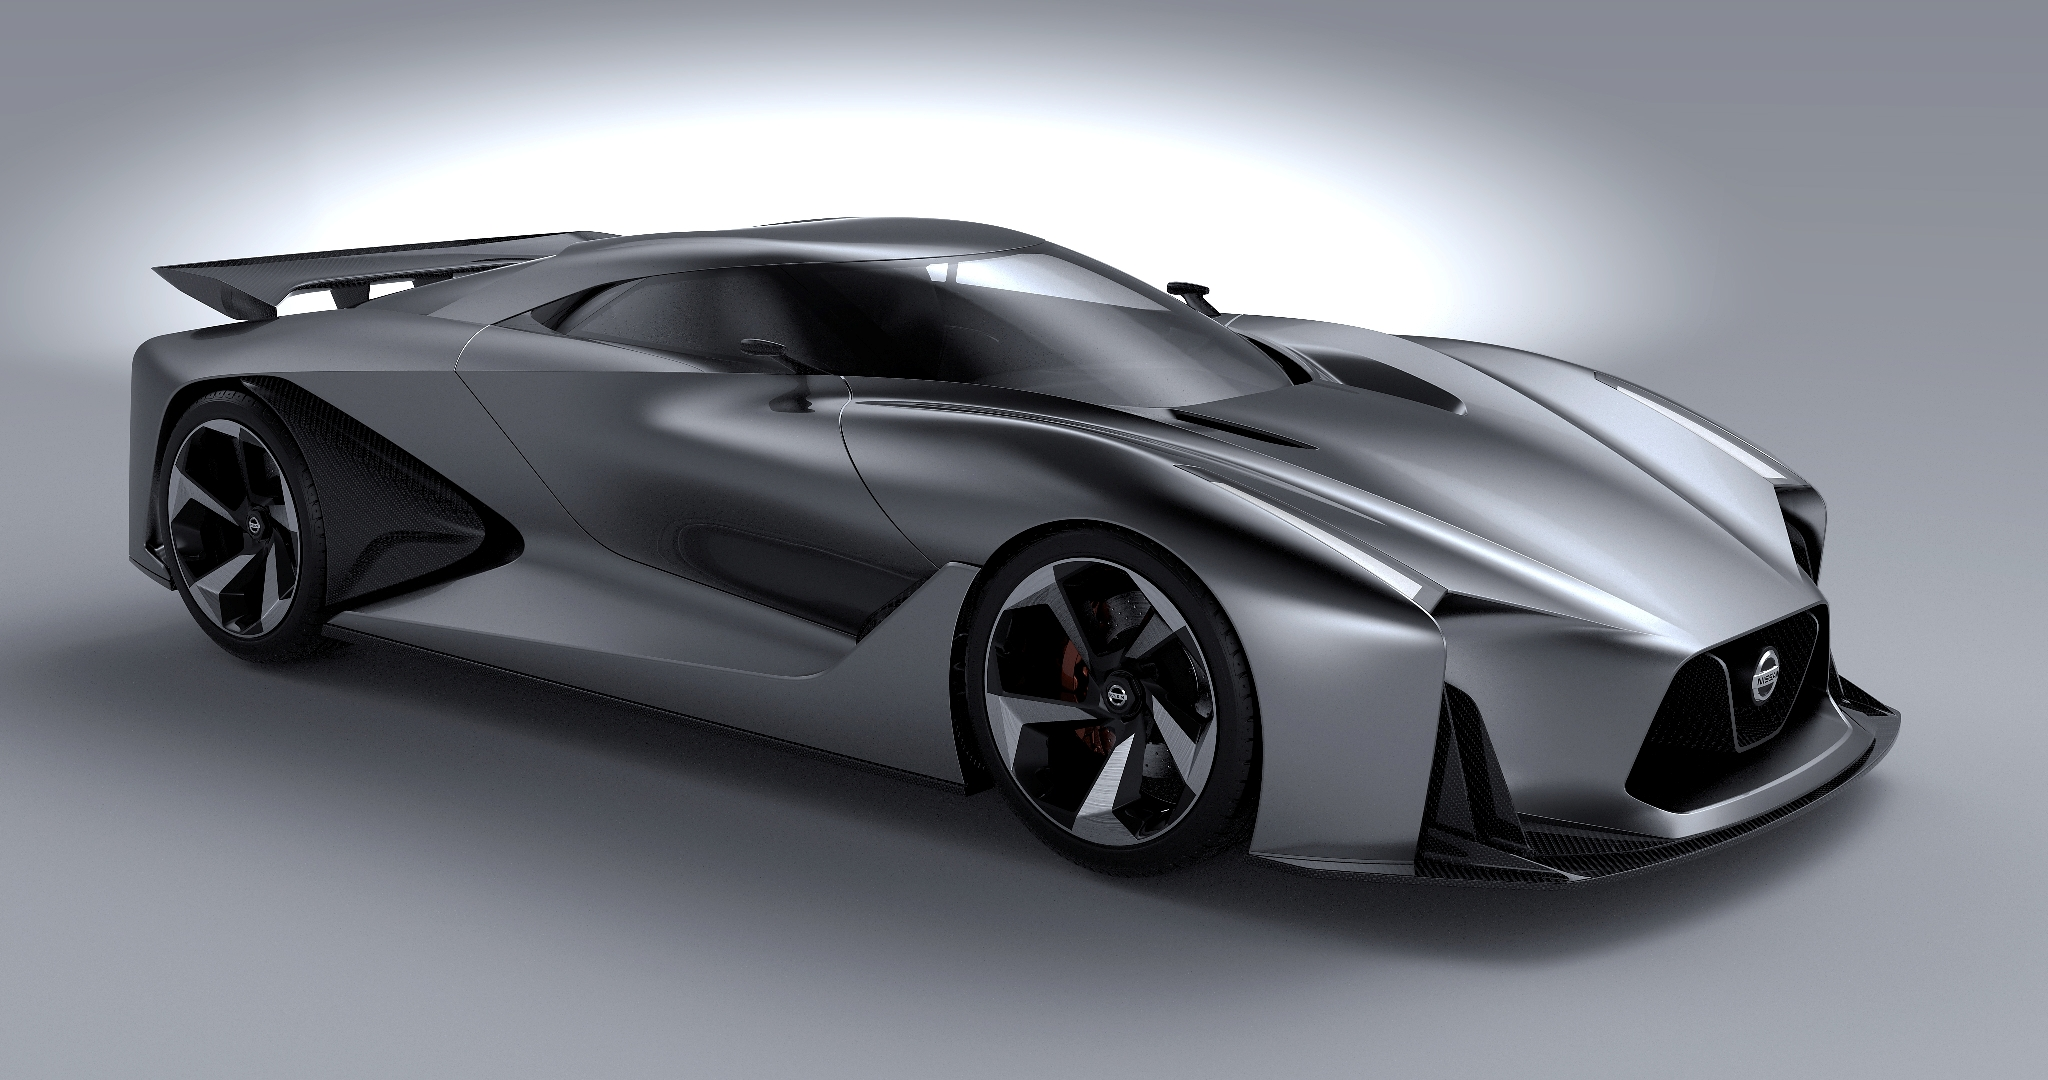 2014_Nissan_Concept_2020_Vision_Gran_Turismo_024_2968.jpg